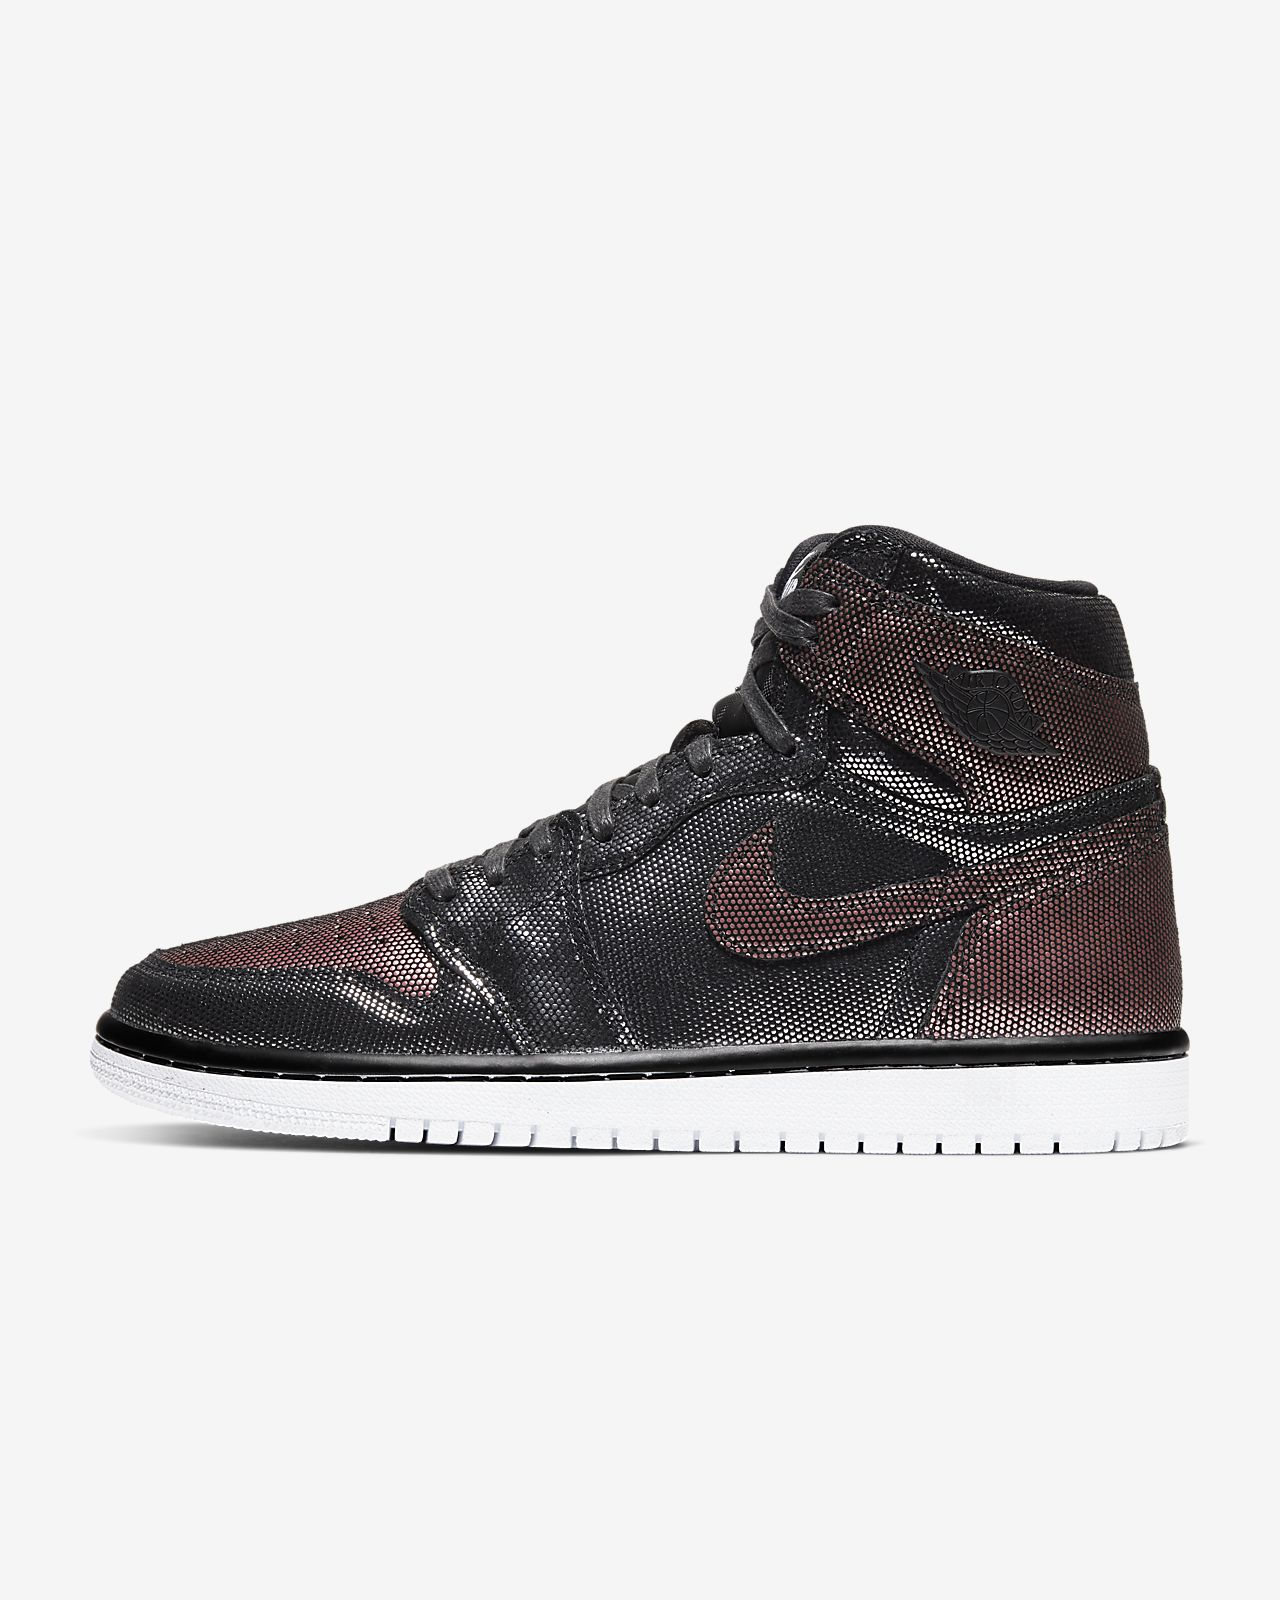 air jordan 1 og fearless metallic rose gold